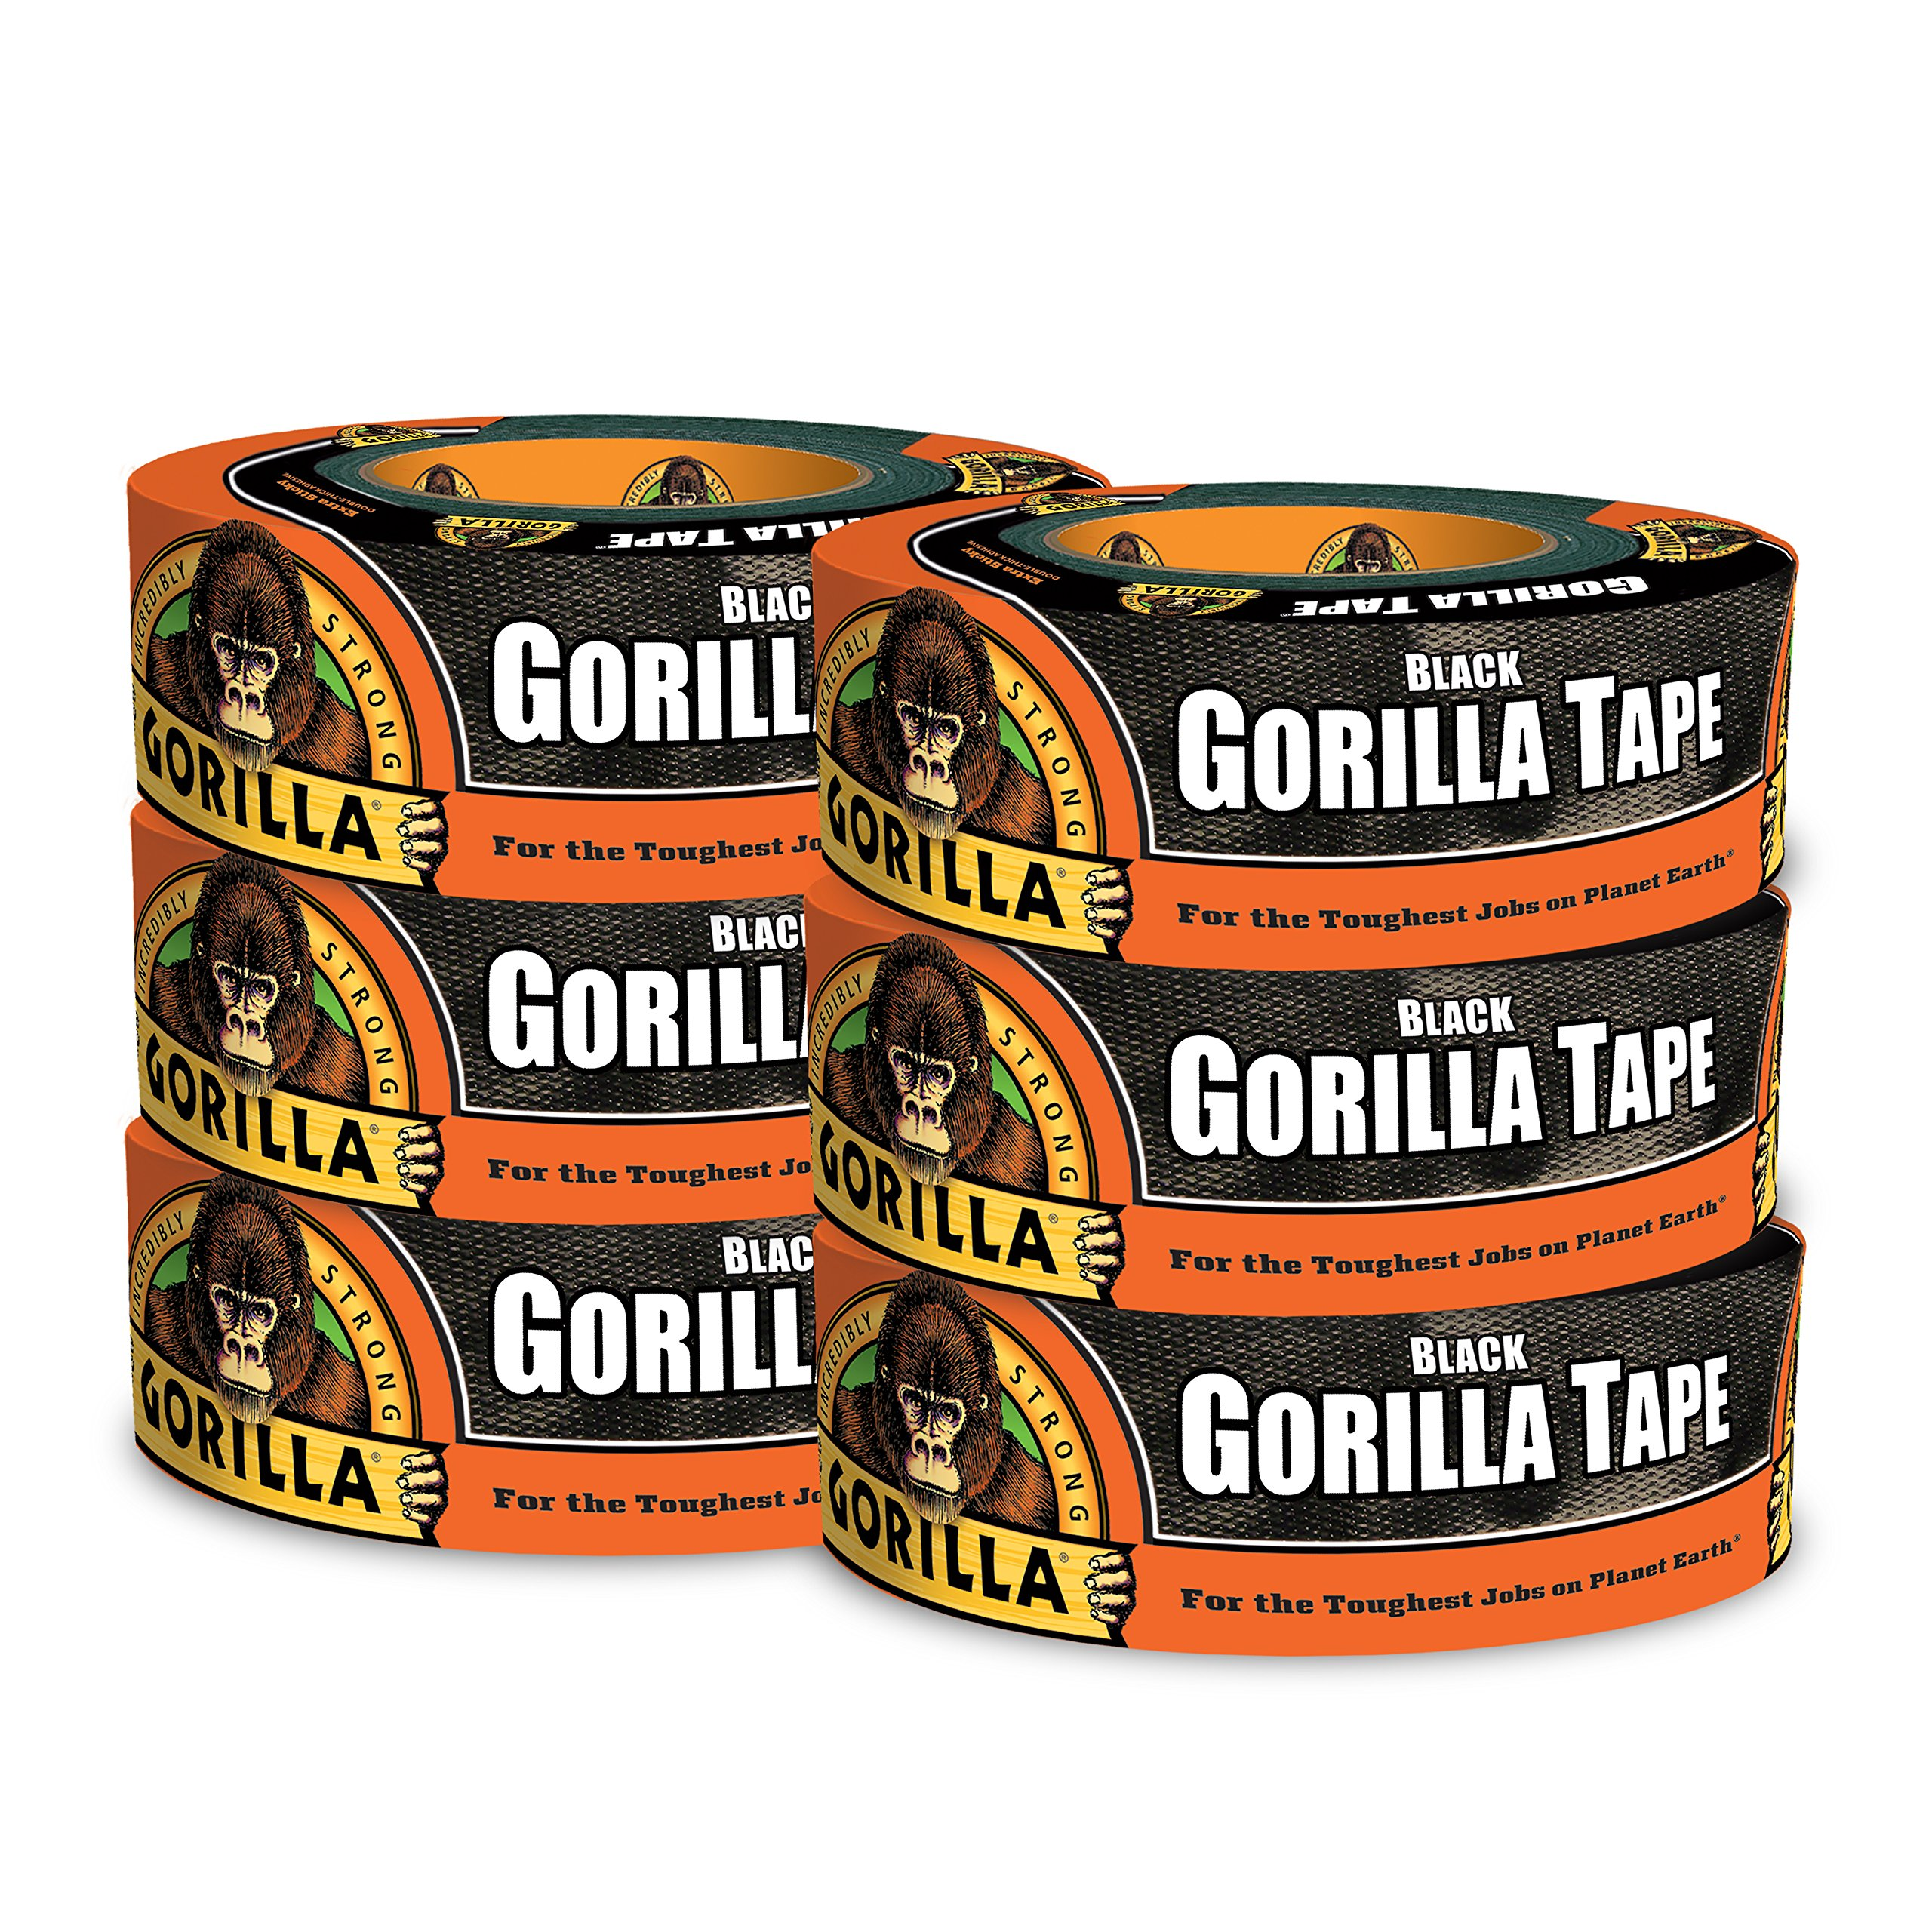 Gorilla Tape, Black Duct Tape, 1.88'' x 35 yd, Black, (Pack of 6) by Gorilla (Image #1)